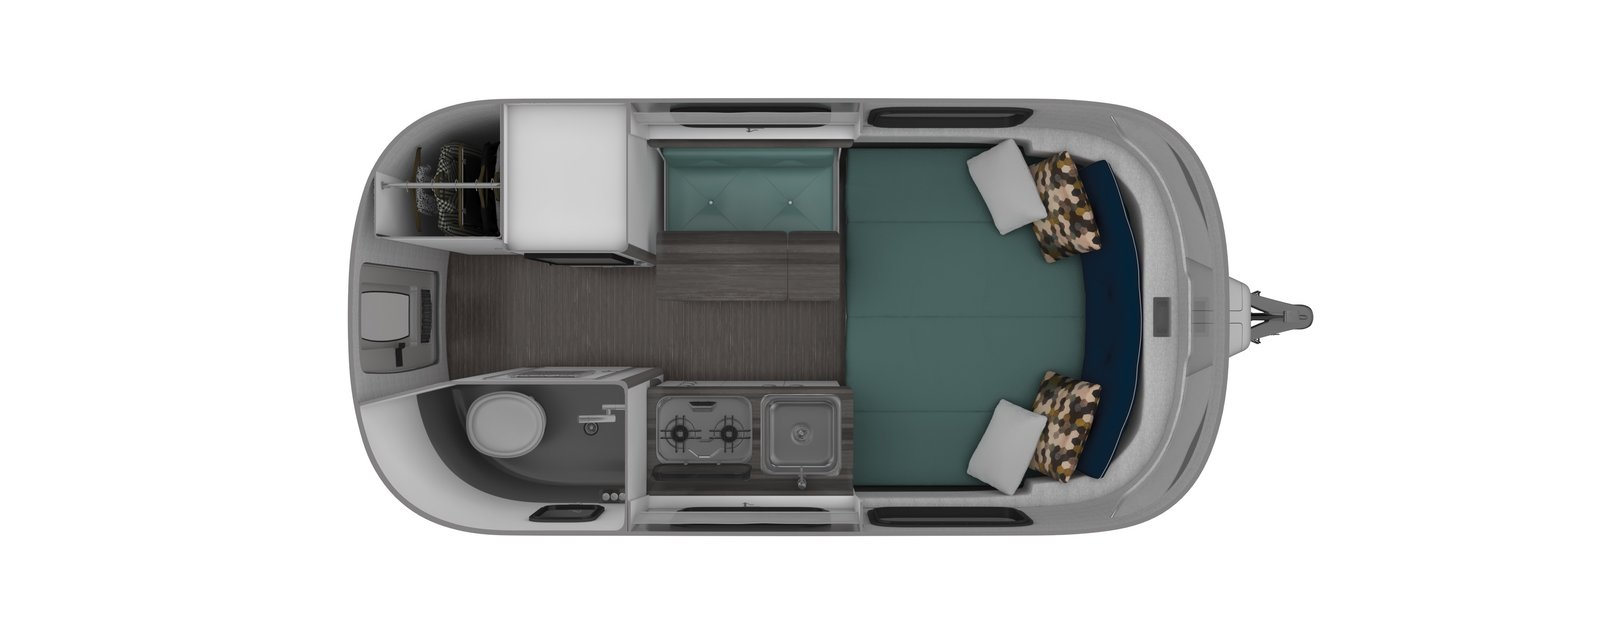 A floor plan with a permanent bed for longer trips.